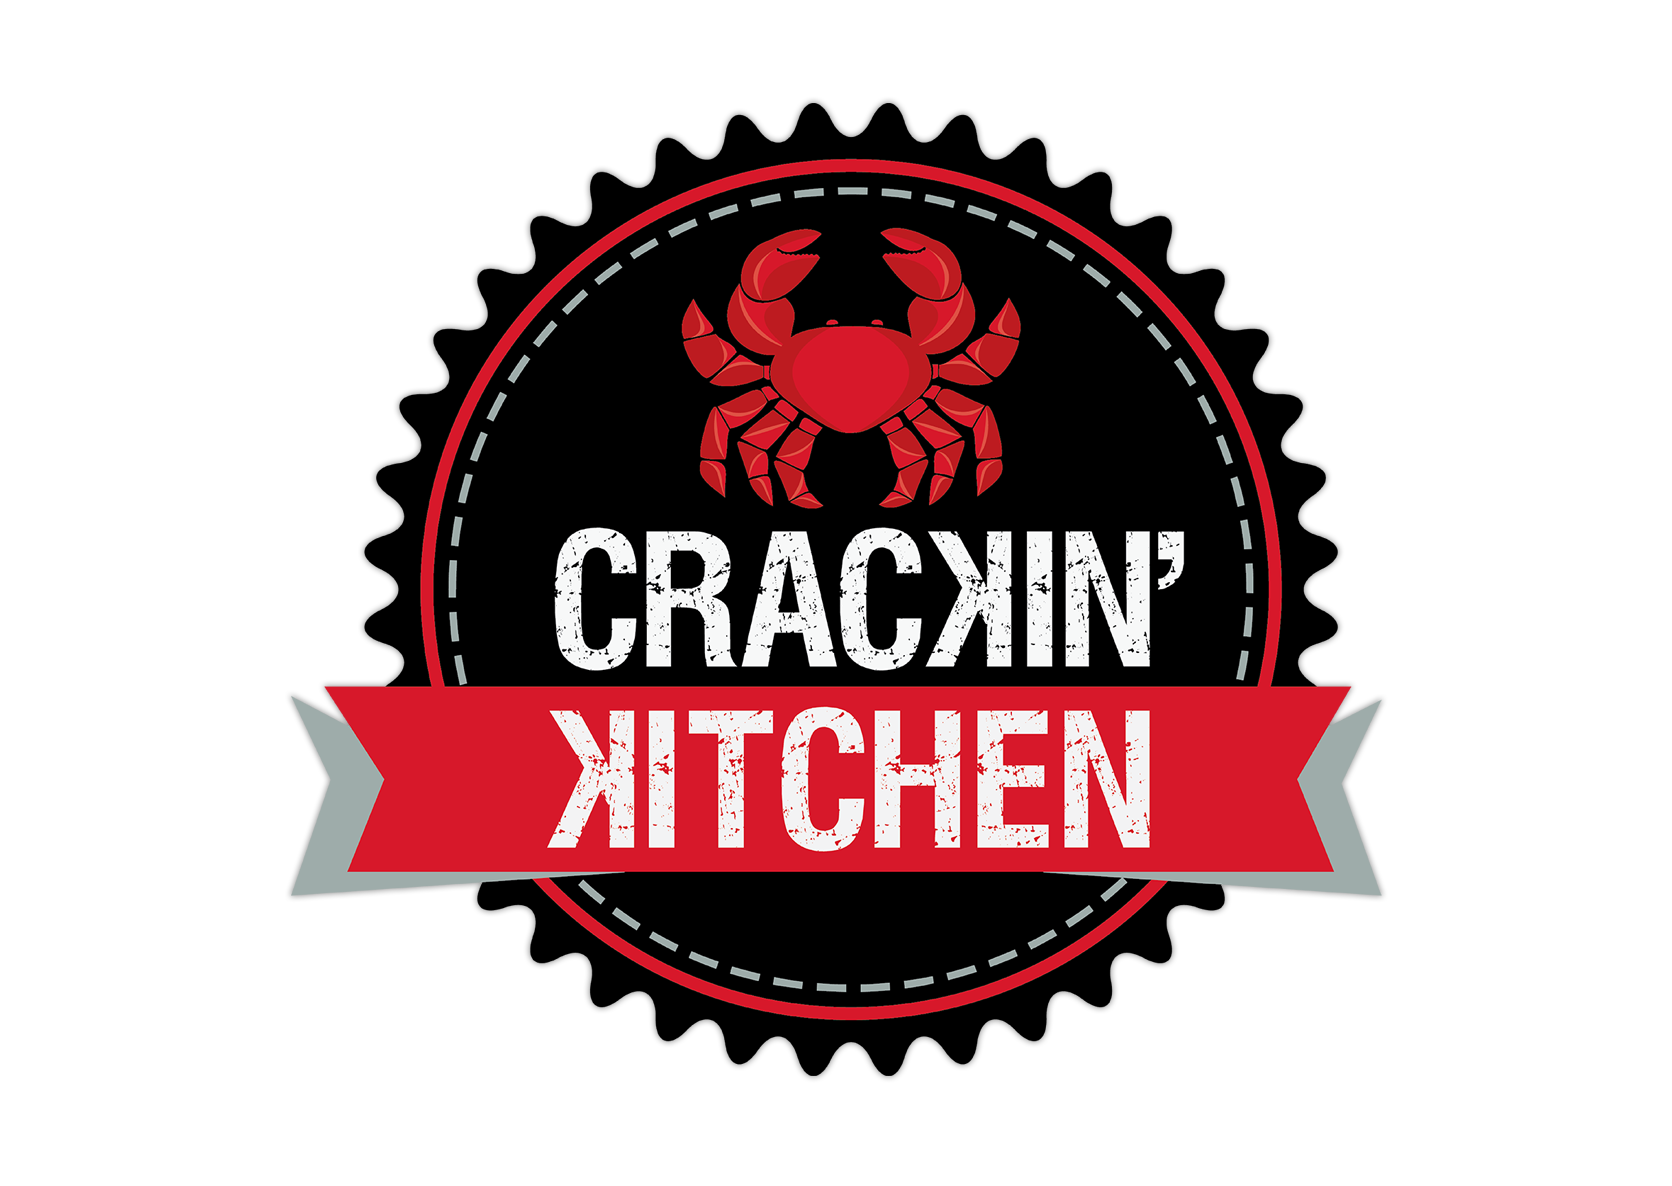 https://crackinkitchen.com/wp-content/uploads/2018/02/crackin-kitchen-logo_FINAL-2.png